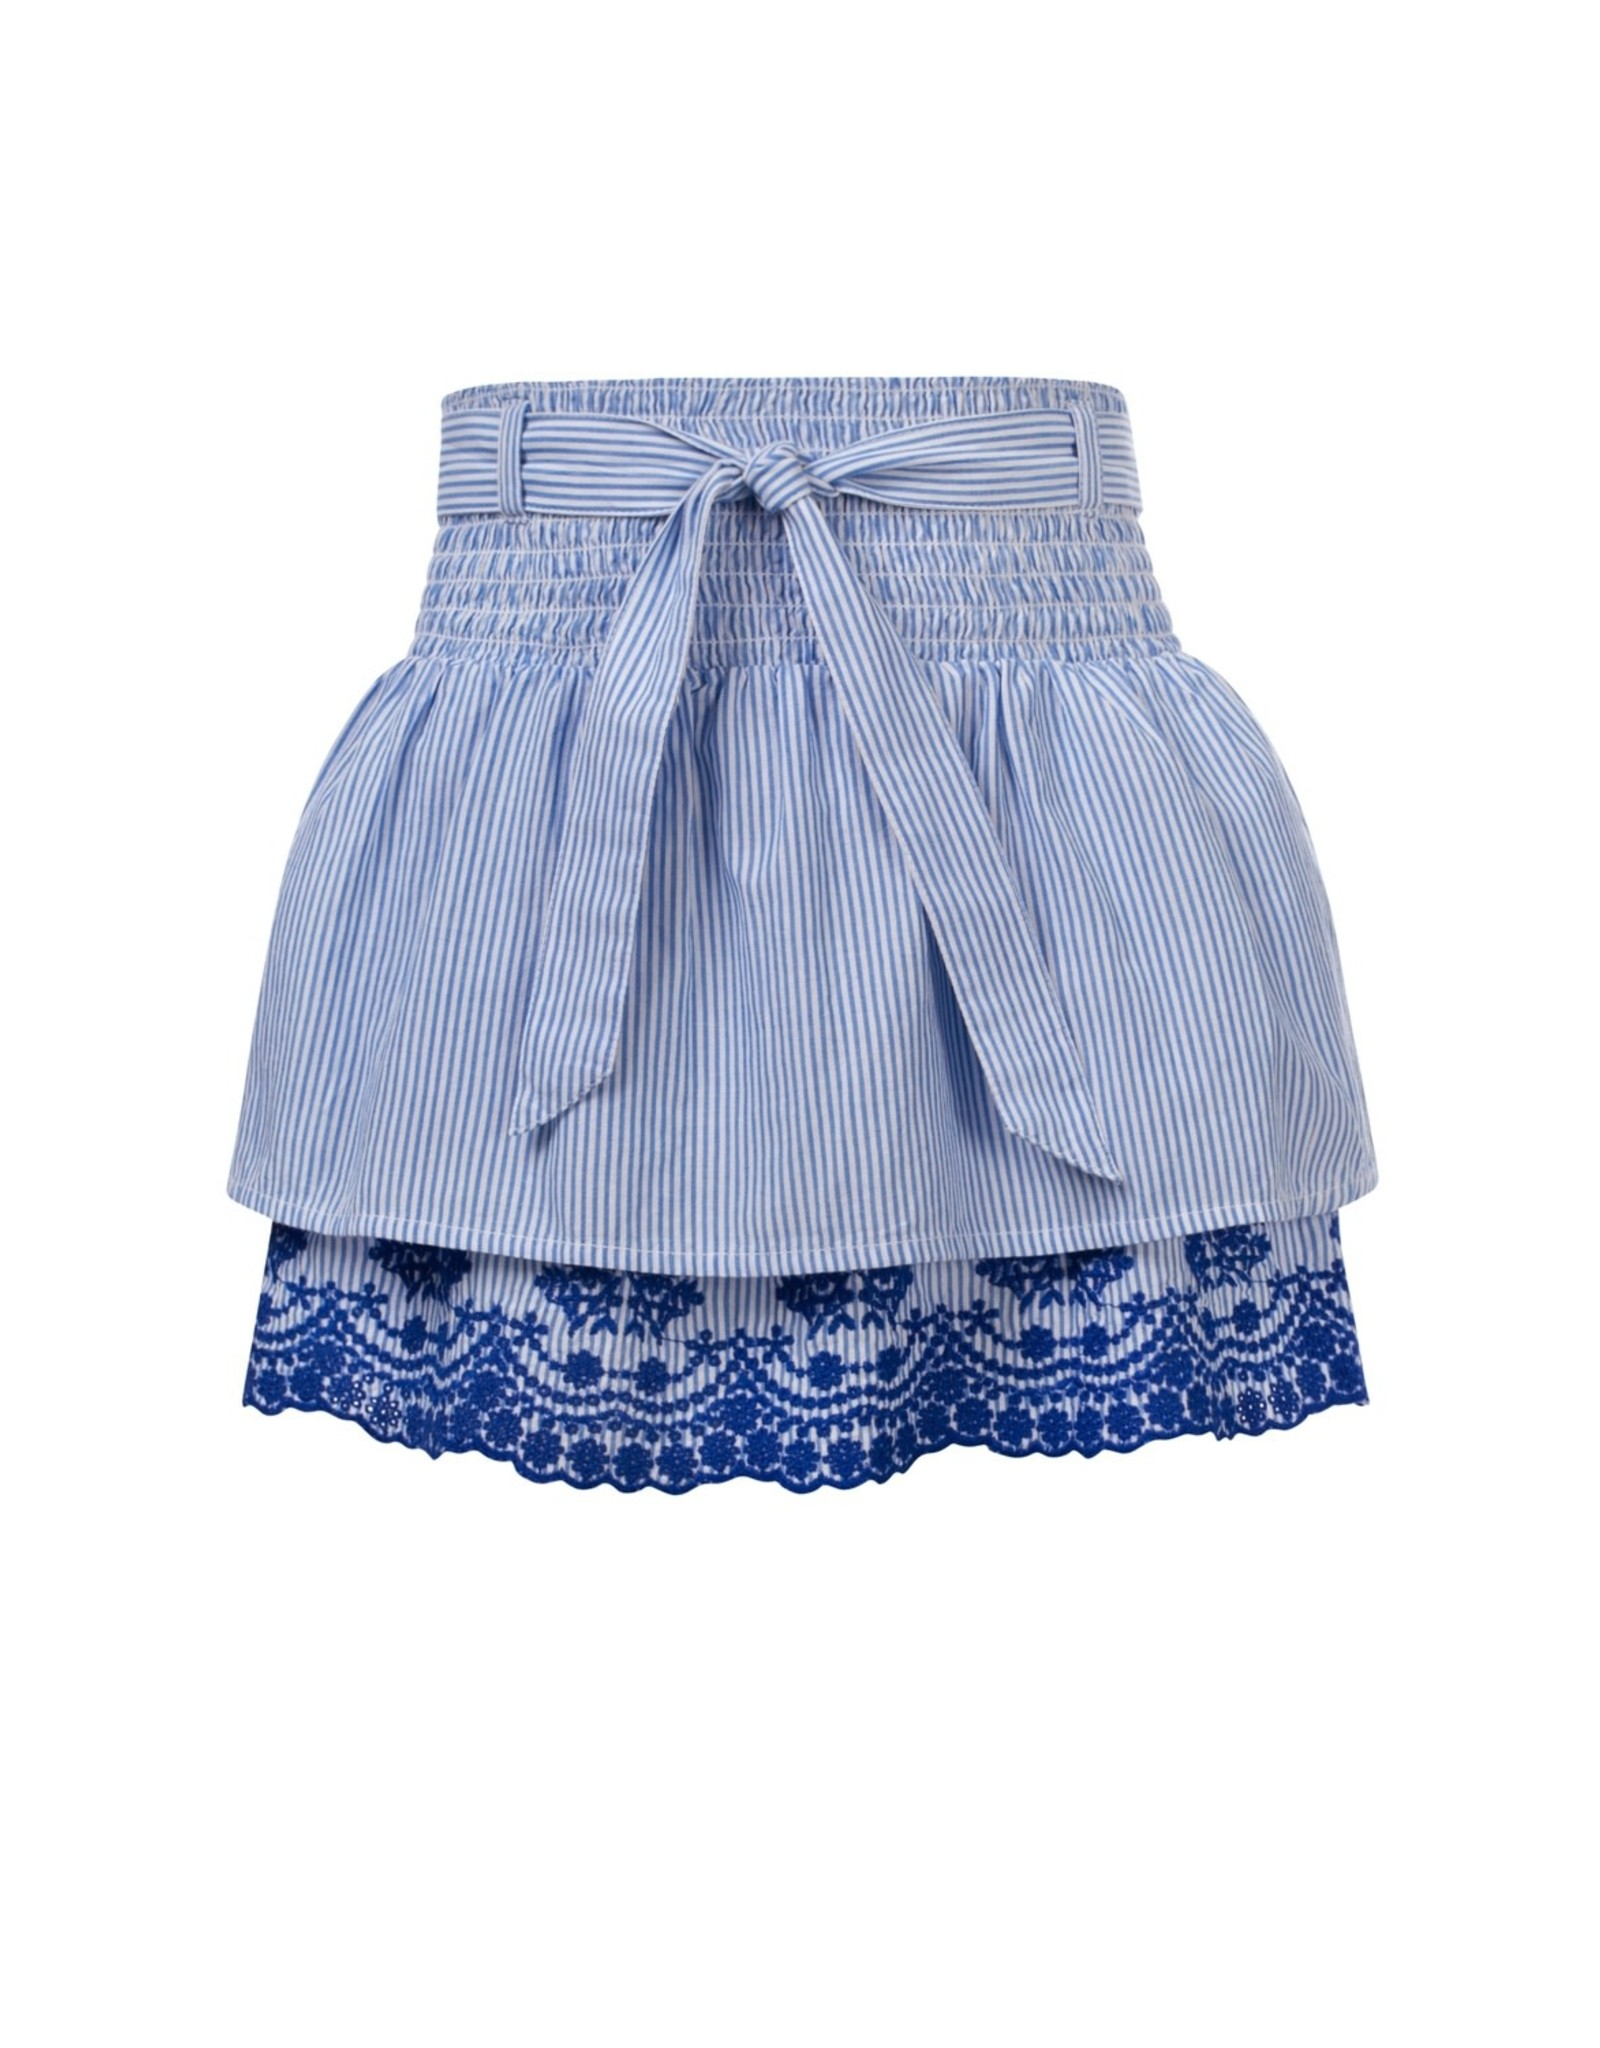 Looxs Girls skirt with broidery heaven stripe